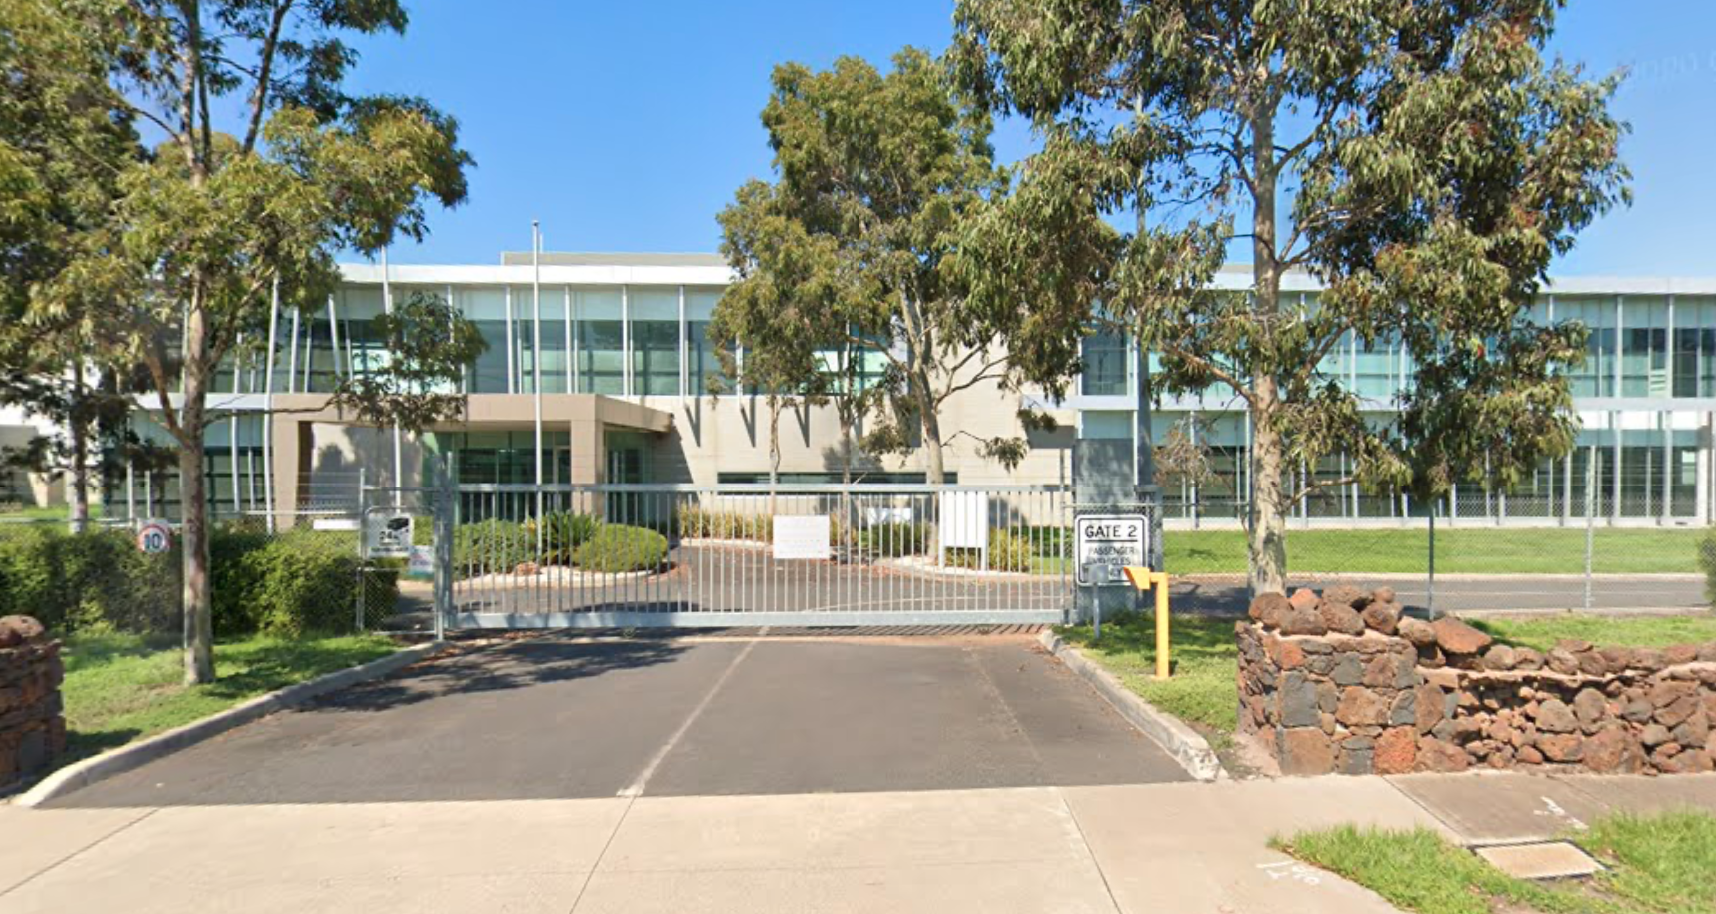 GPT Group asset, 235-239 Boundary Road in Melbourne. (Google Maps)